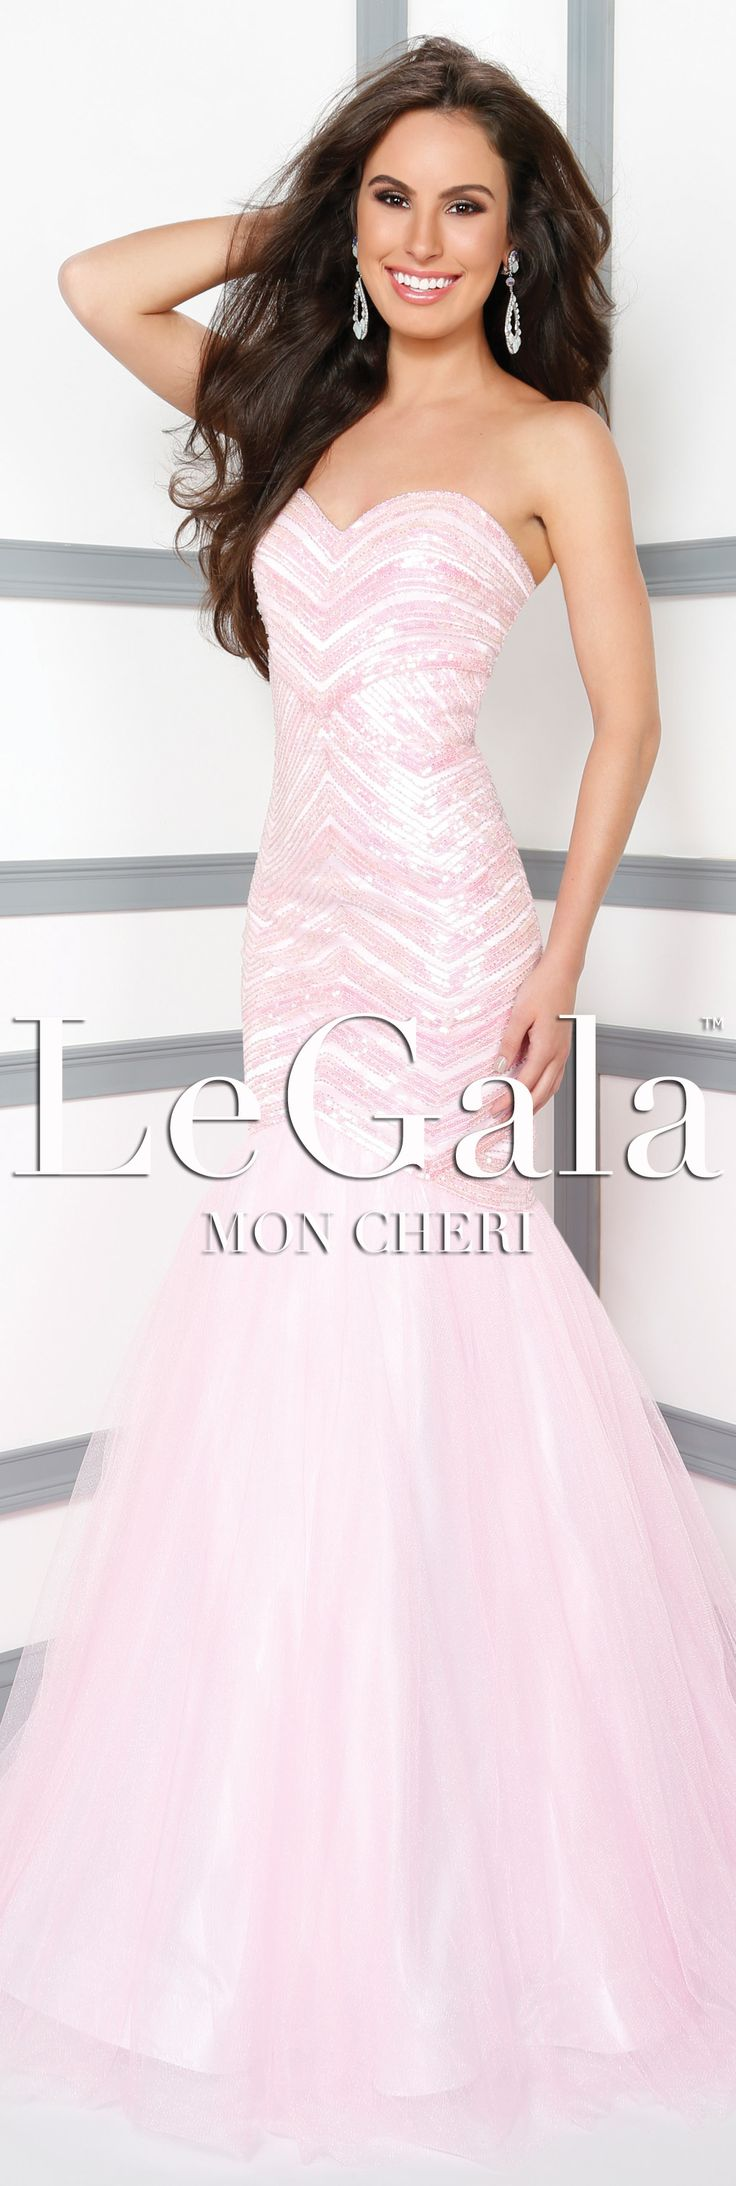 15 best New Prom 2.2.16 images on Pinterest   Fashion forward, Party ...